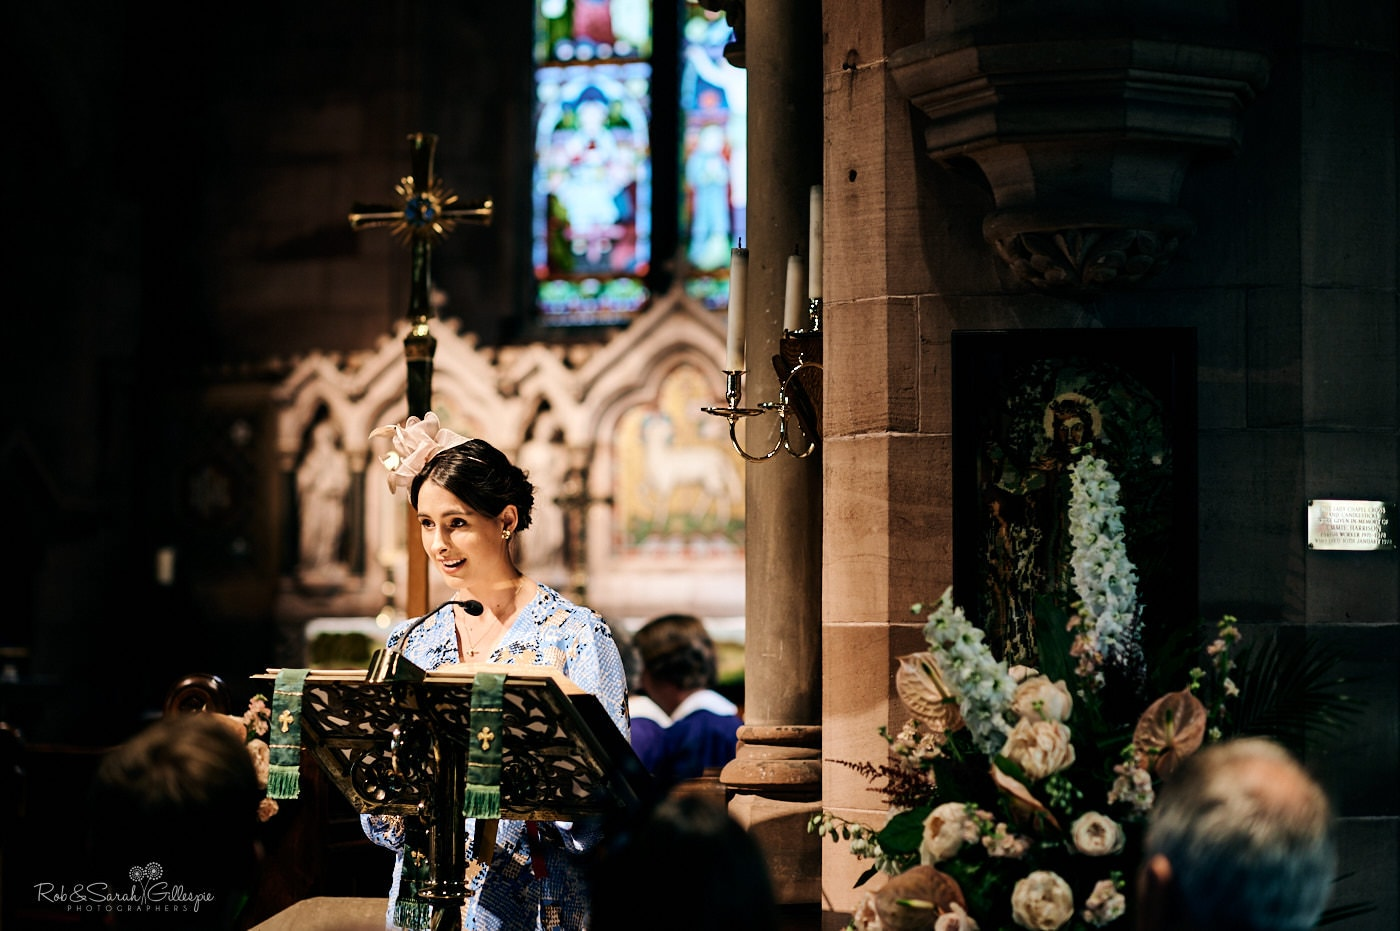 Readings from wedding guest in church service